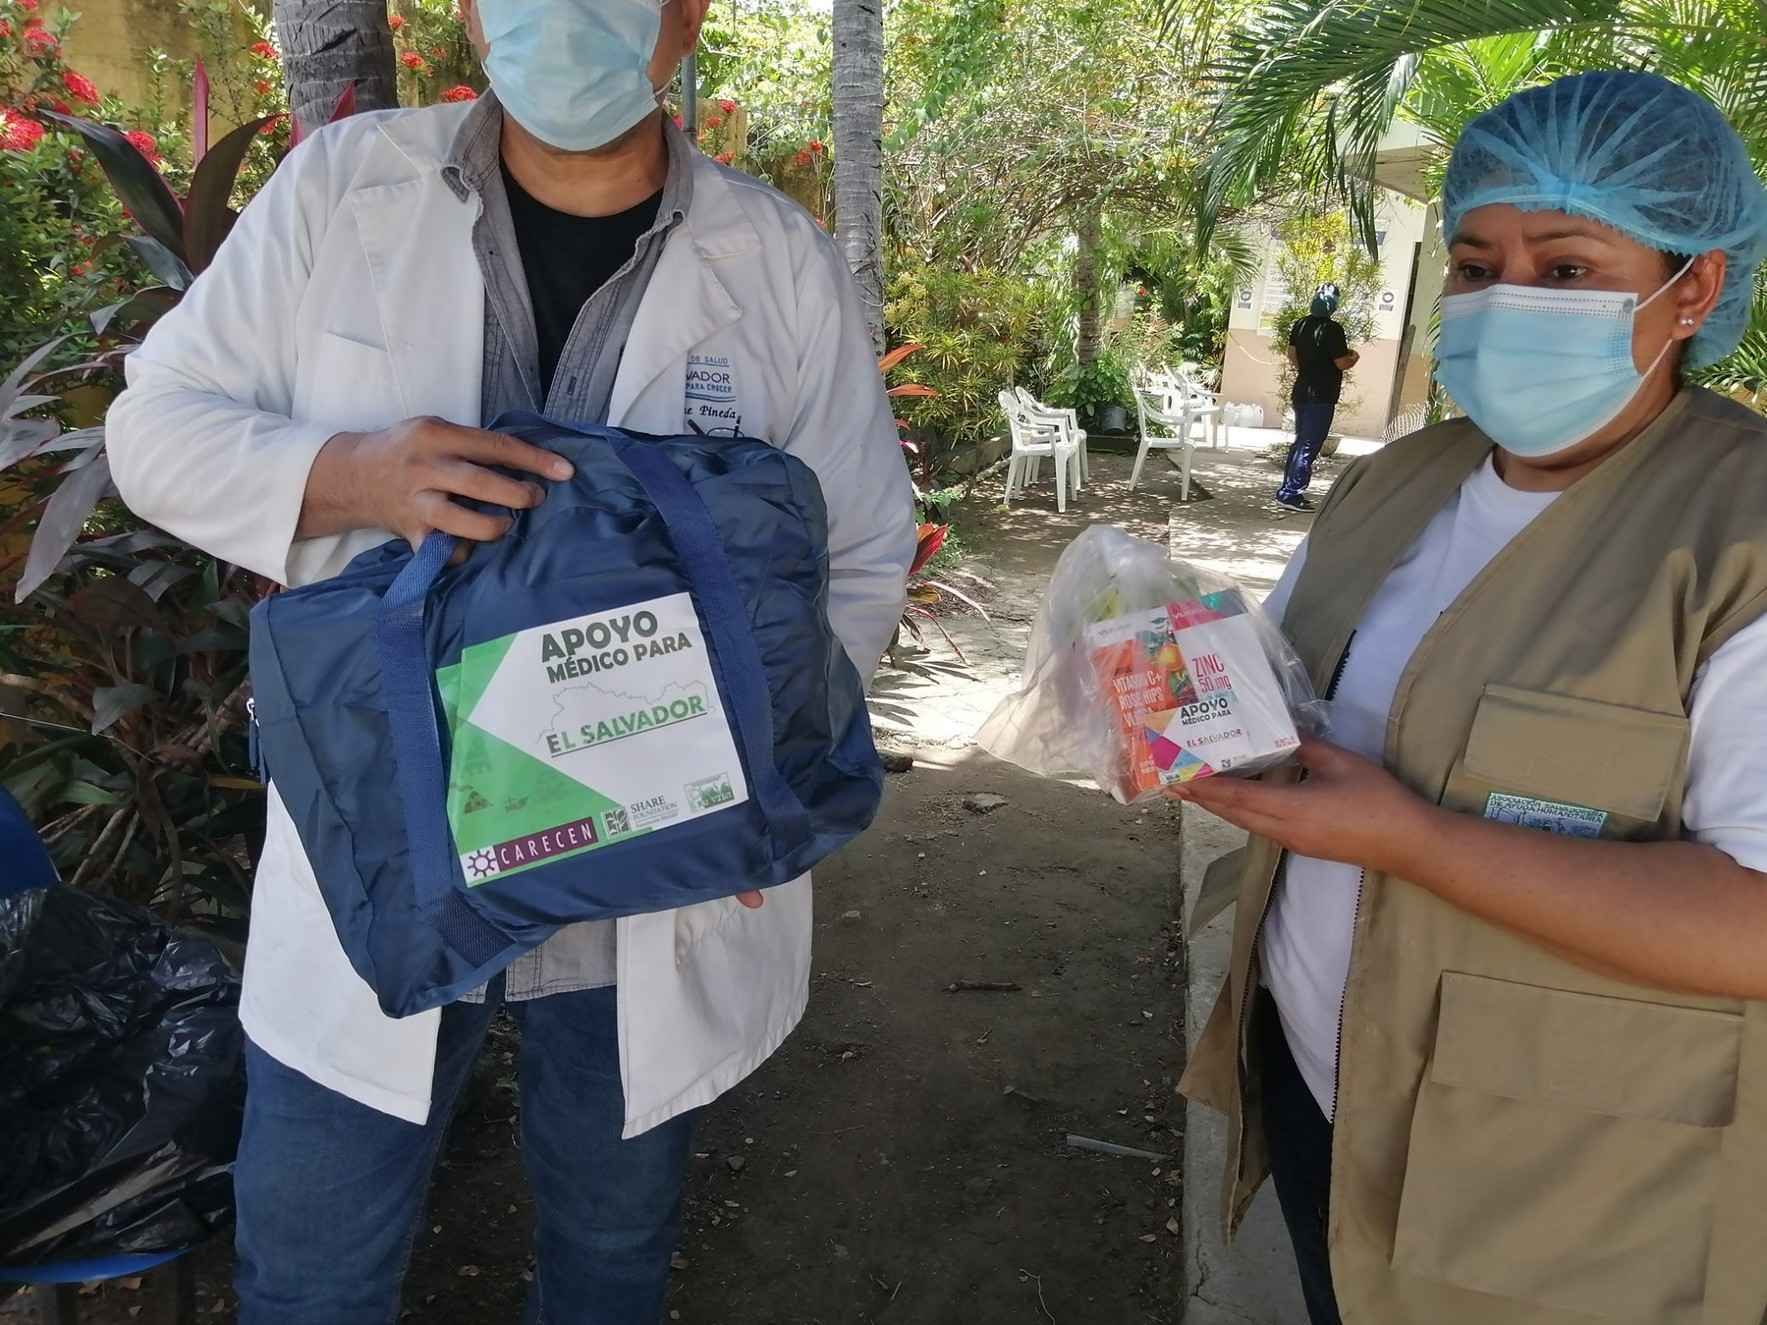 SUPPORT MEDICAL AID FOR EL SALVADOR image